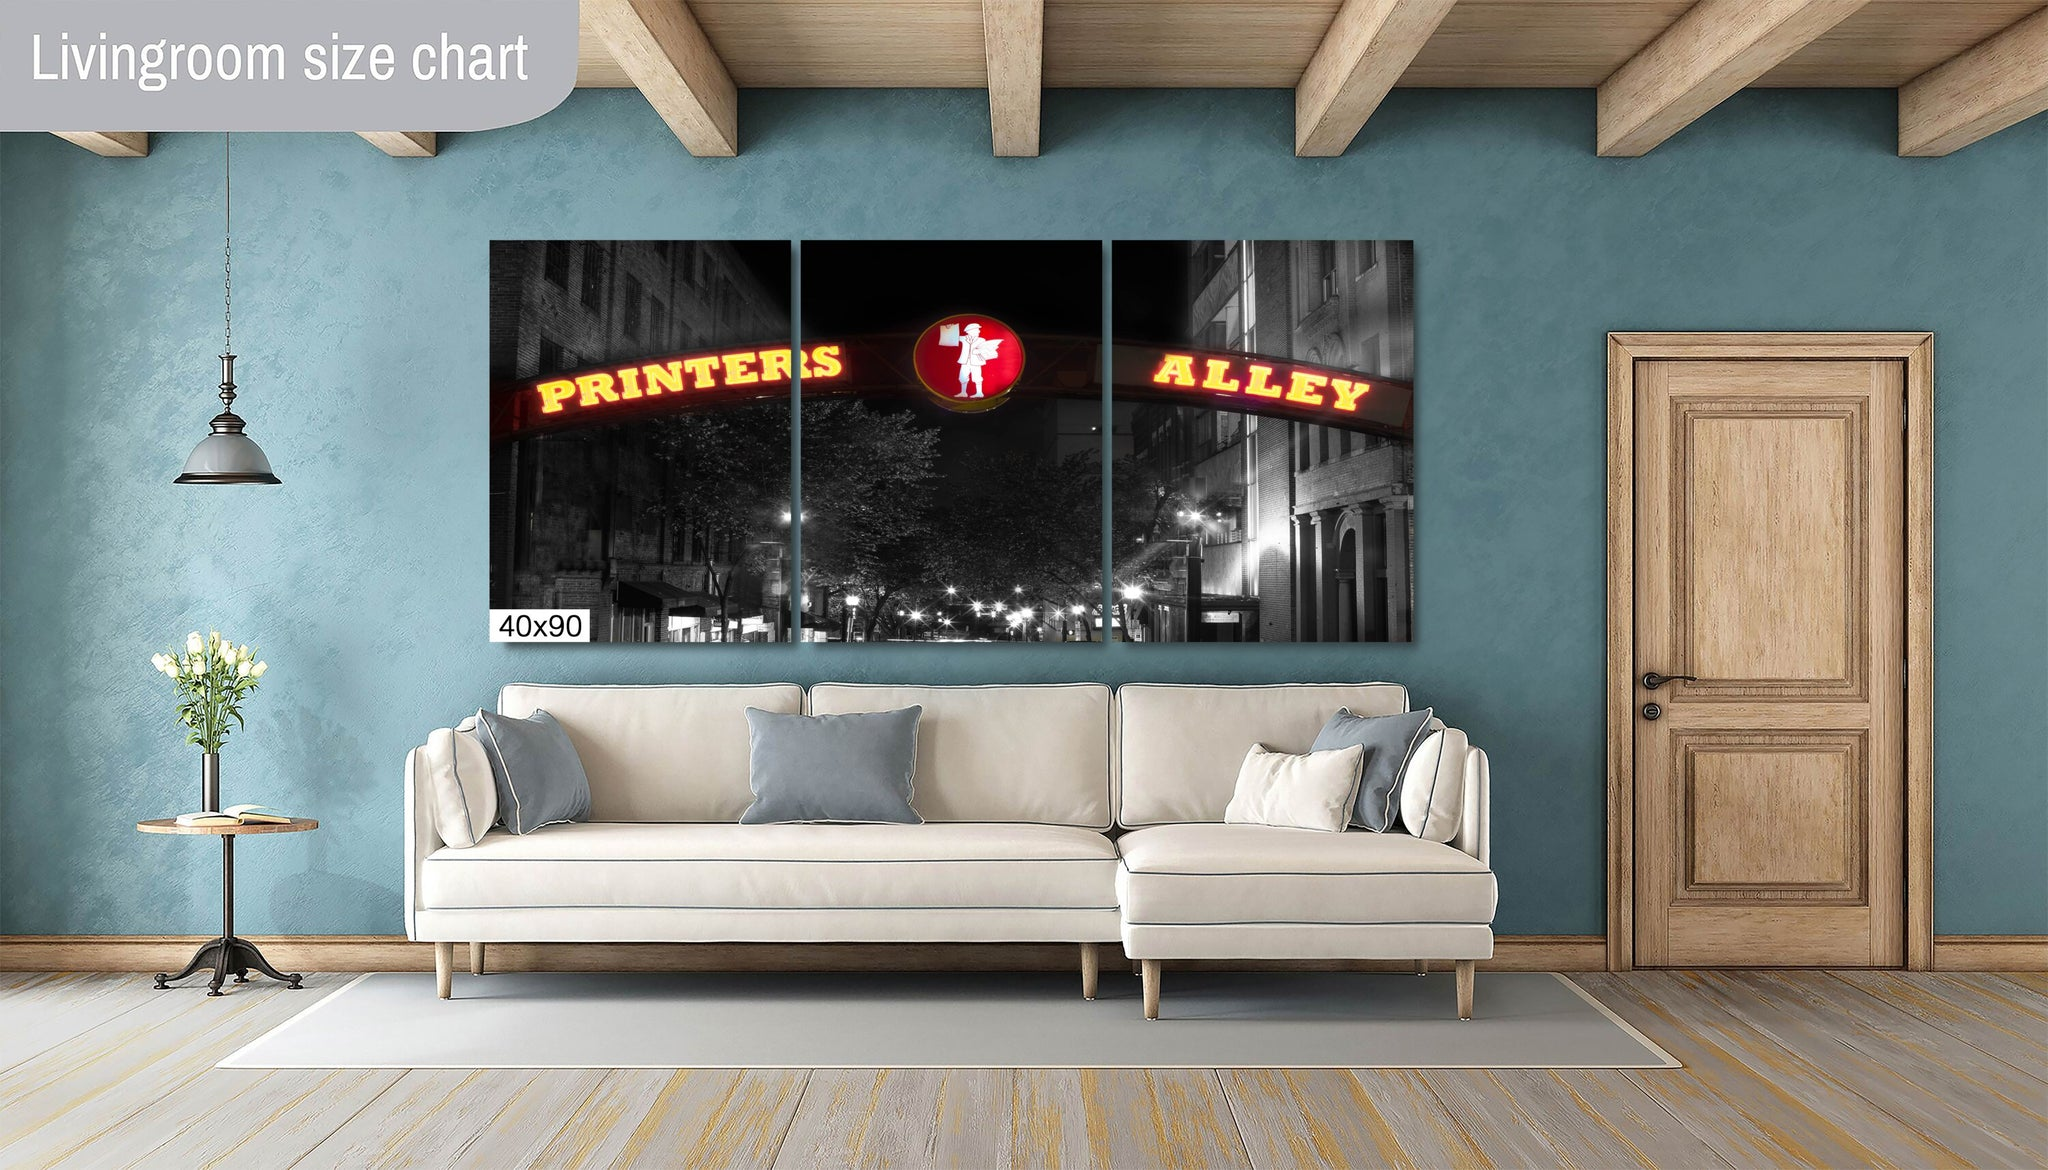 Printer's Alley Yellow and Red Nashville City Photography Metal Print Wall Art Picture Home Decor Poster Landmark Bedroom Livingroom